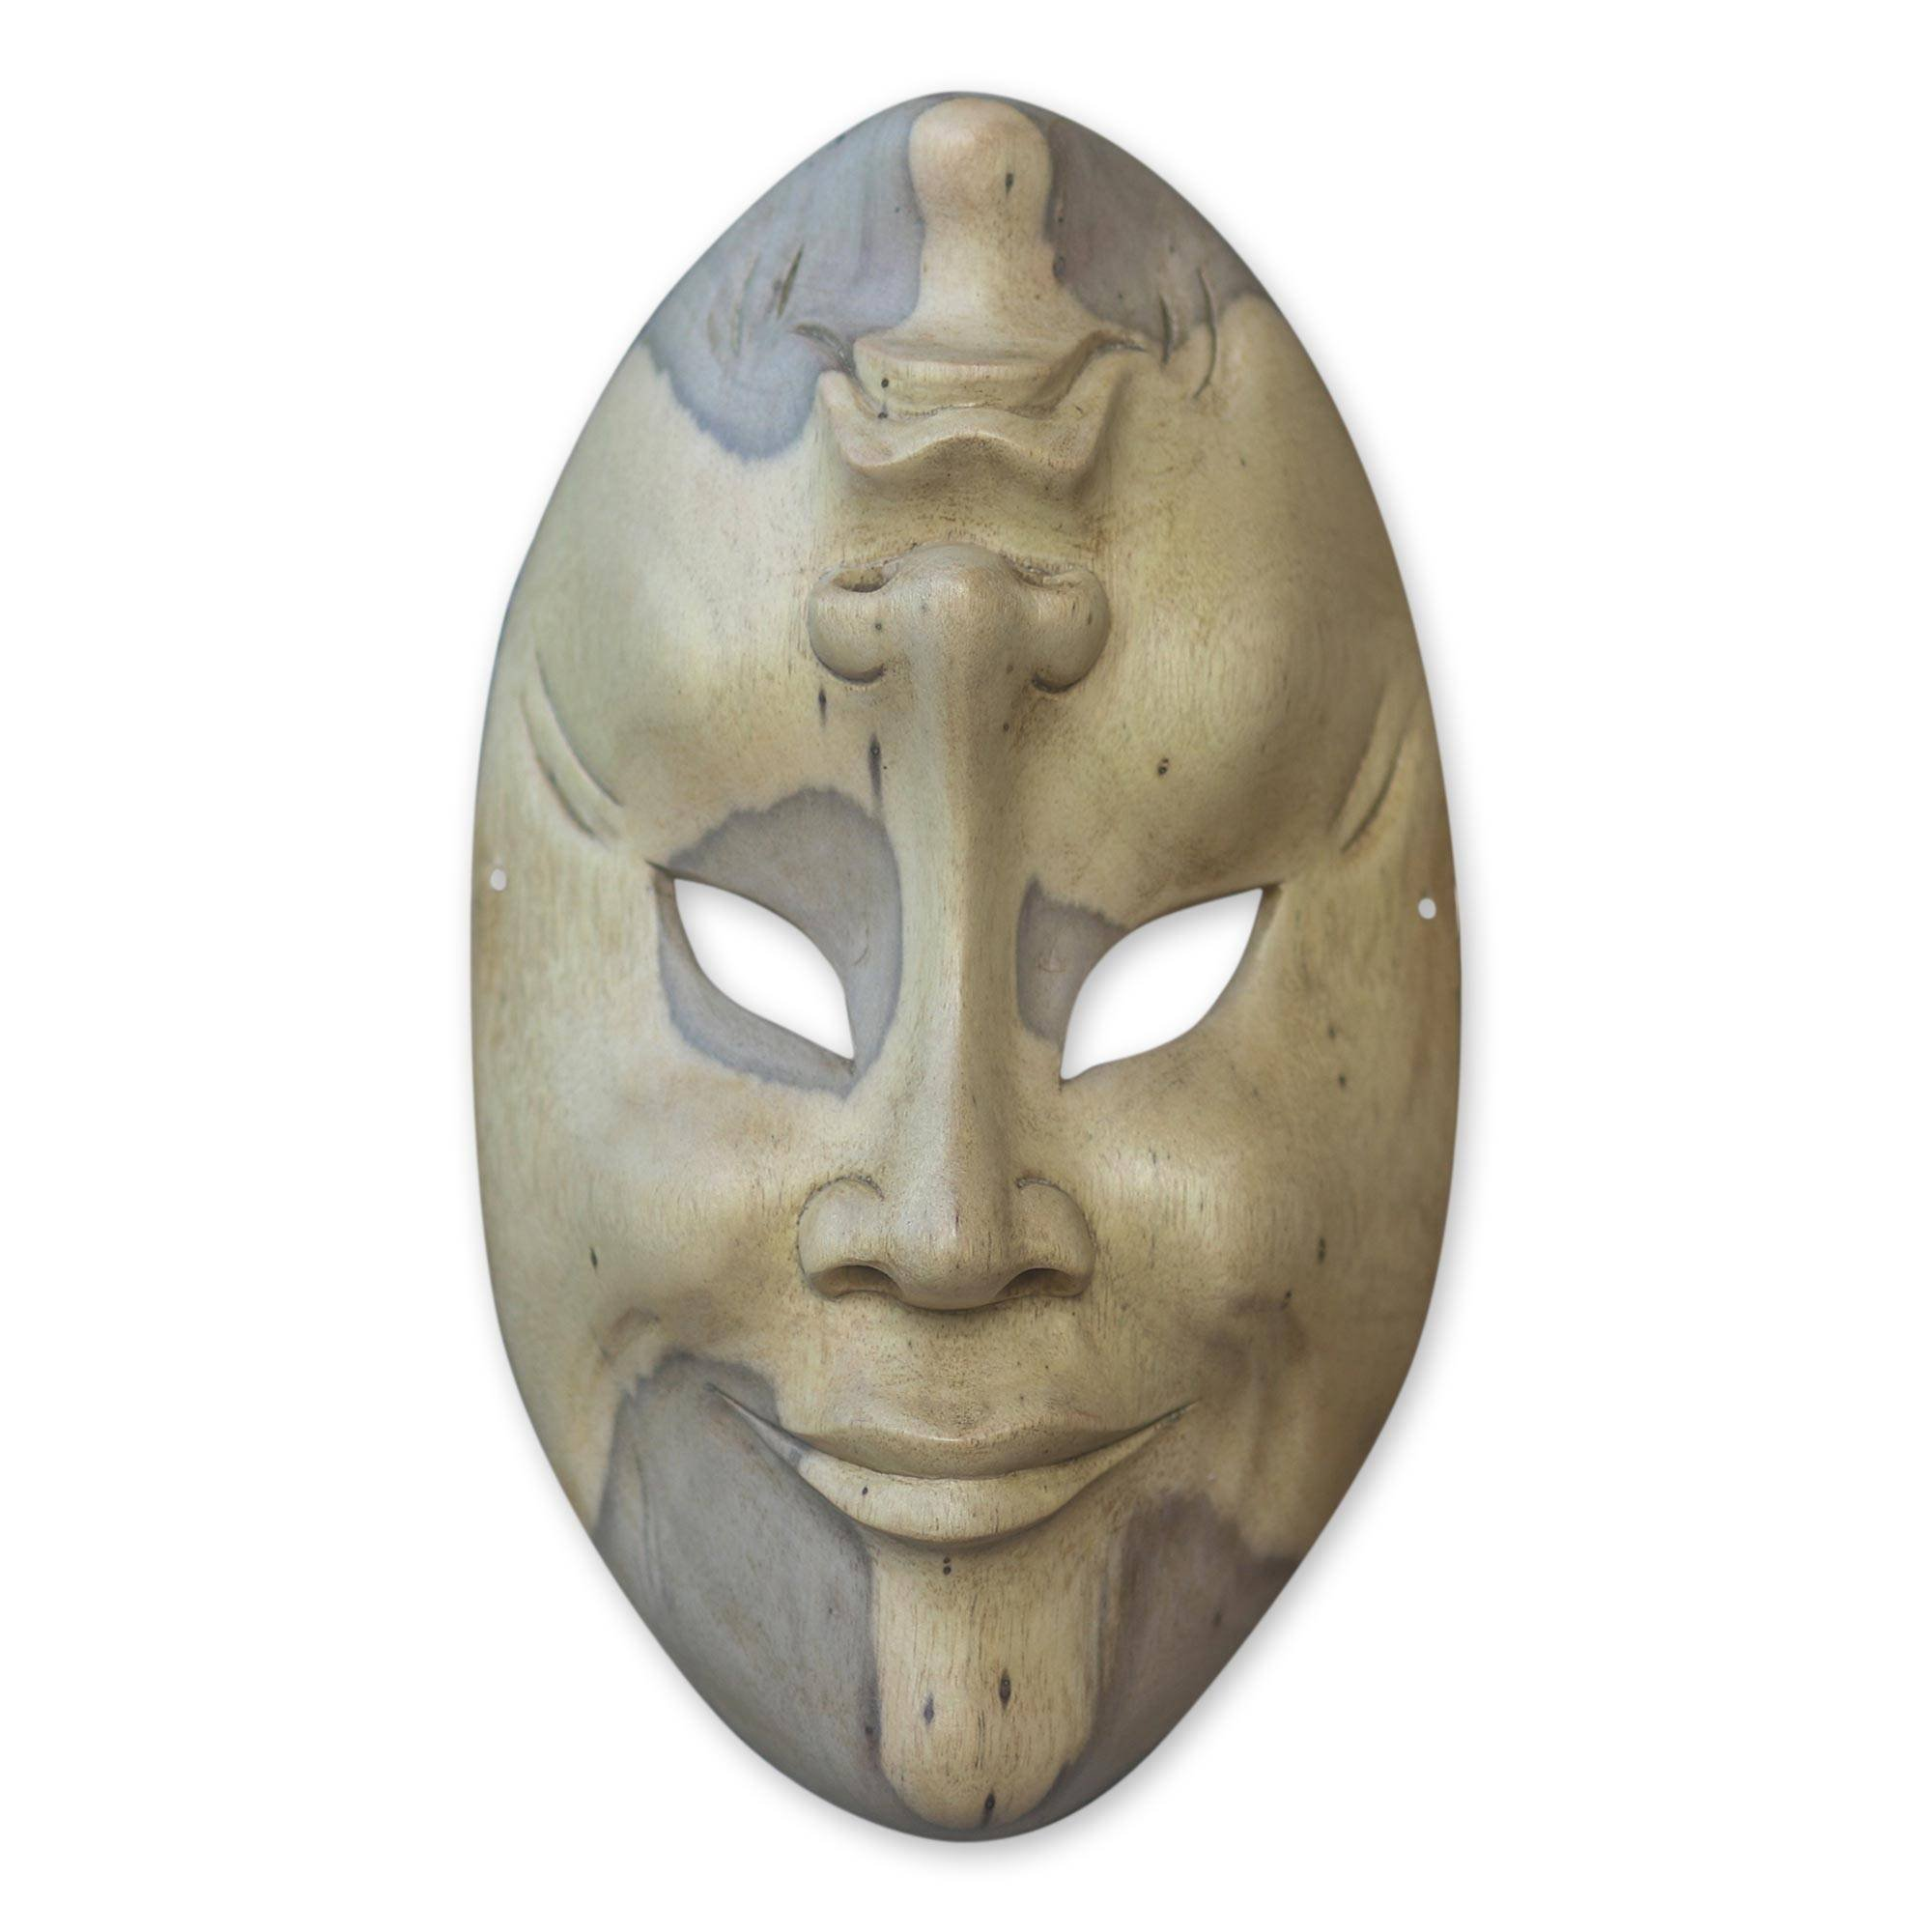 NOVICA 56221 Comedy and Tragedy' Wood mask by NOVICA